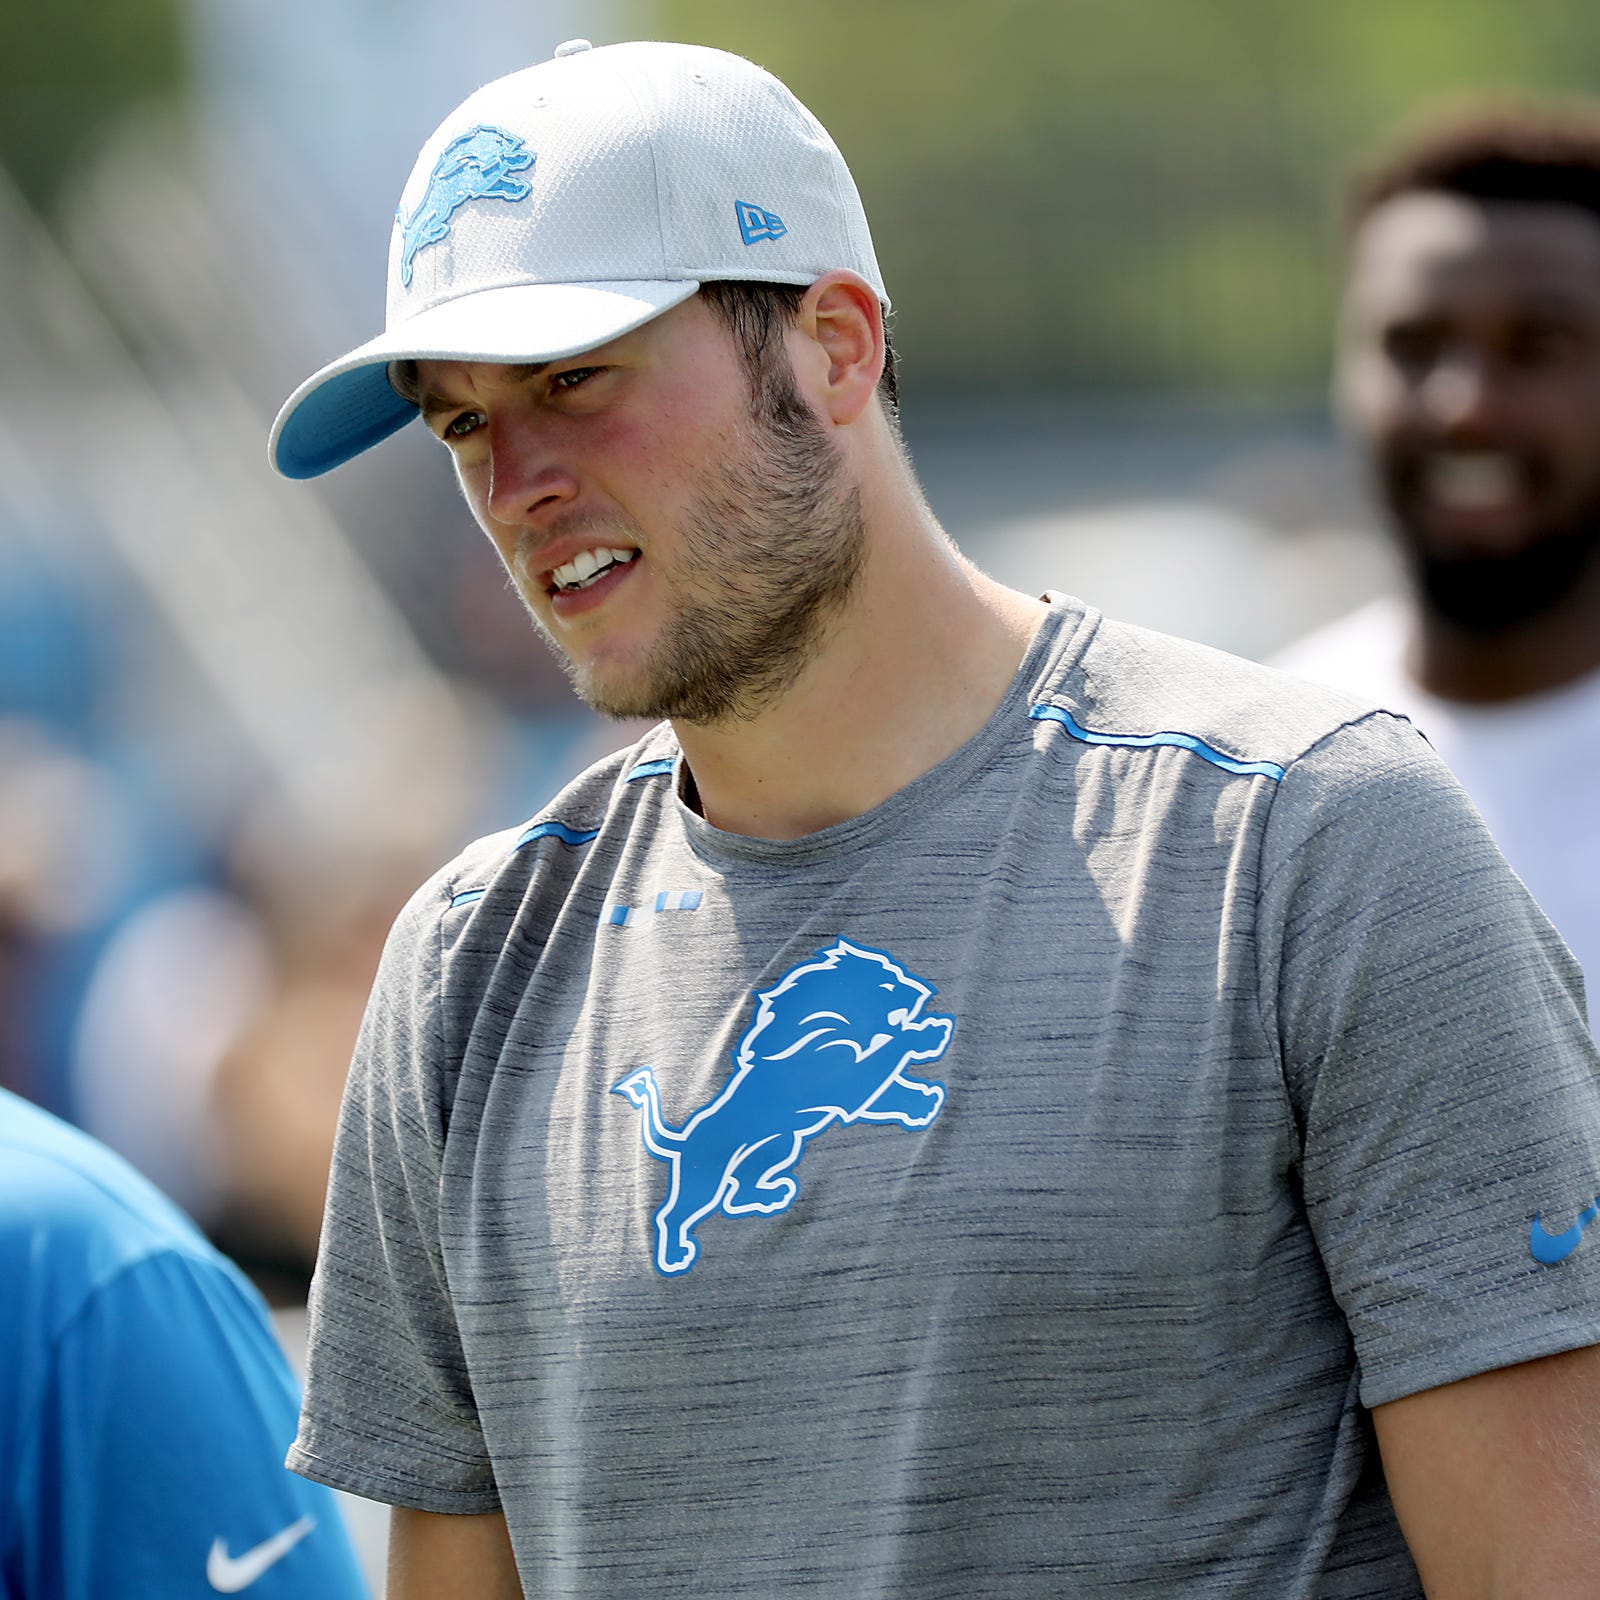 Detroit Lions' Matthew Stafford may make preseason debut vs. Giants